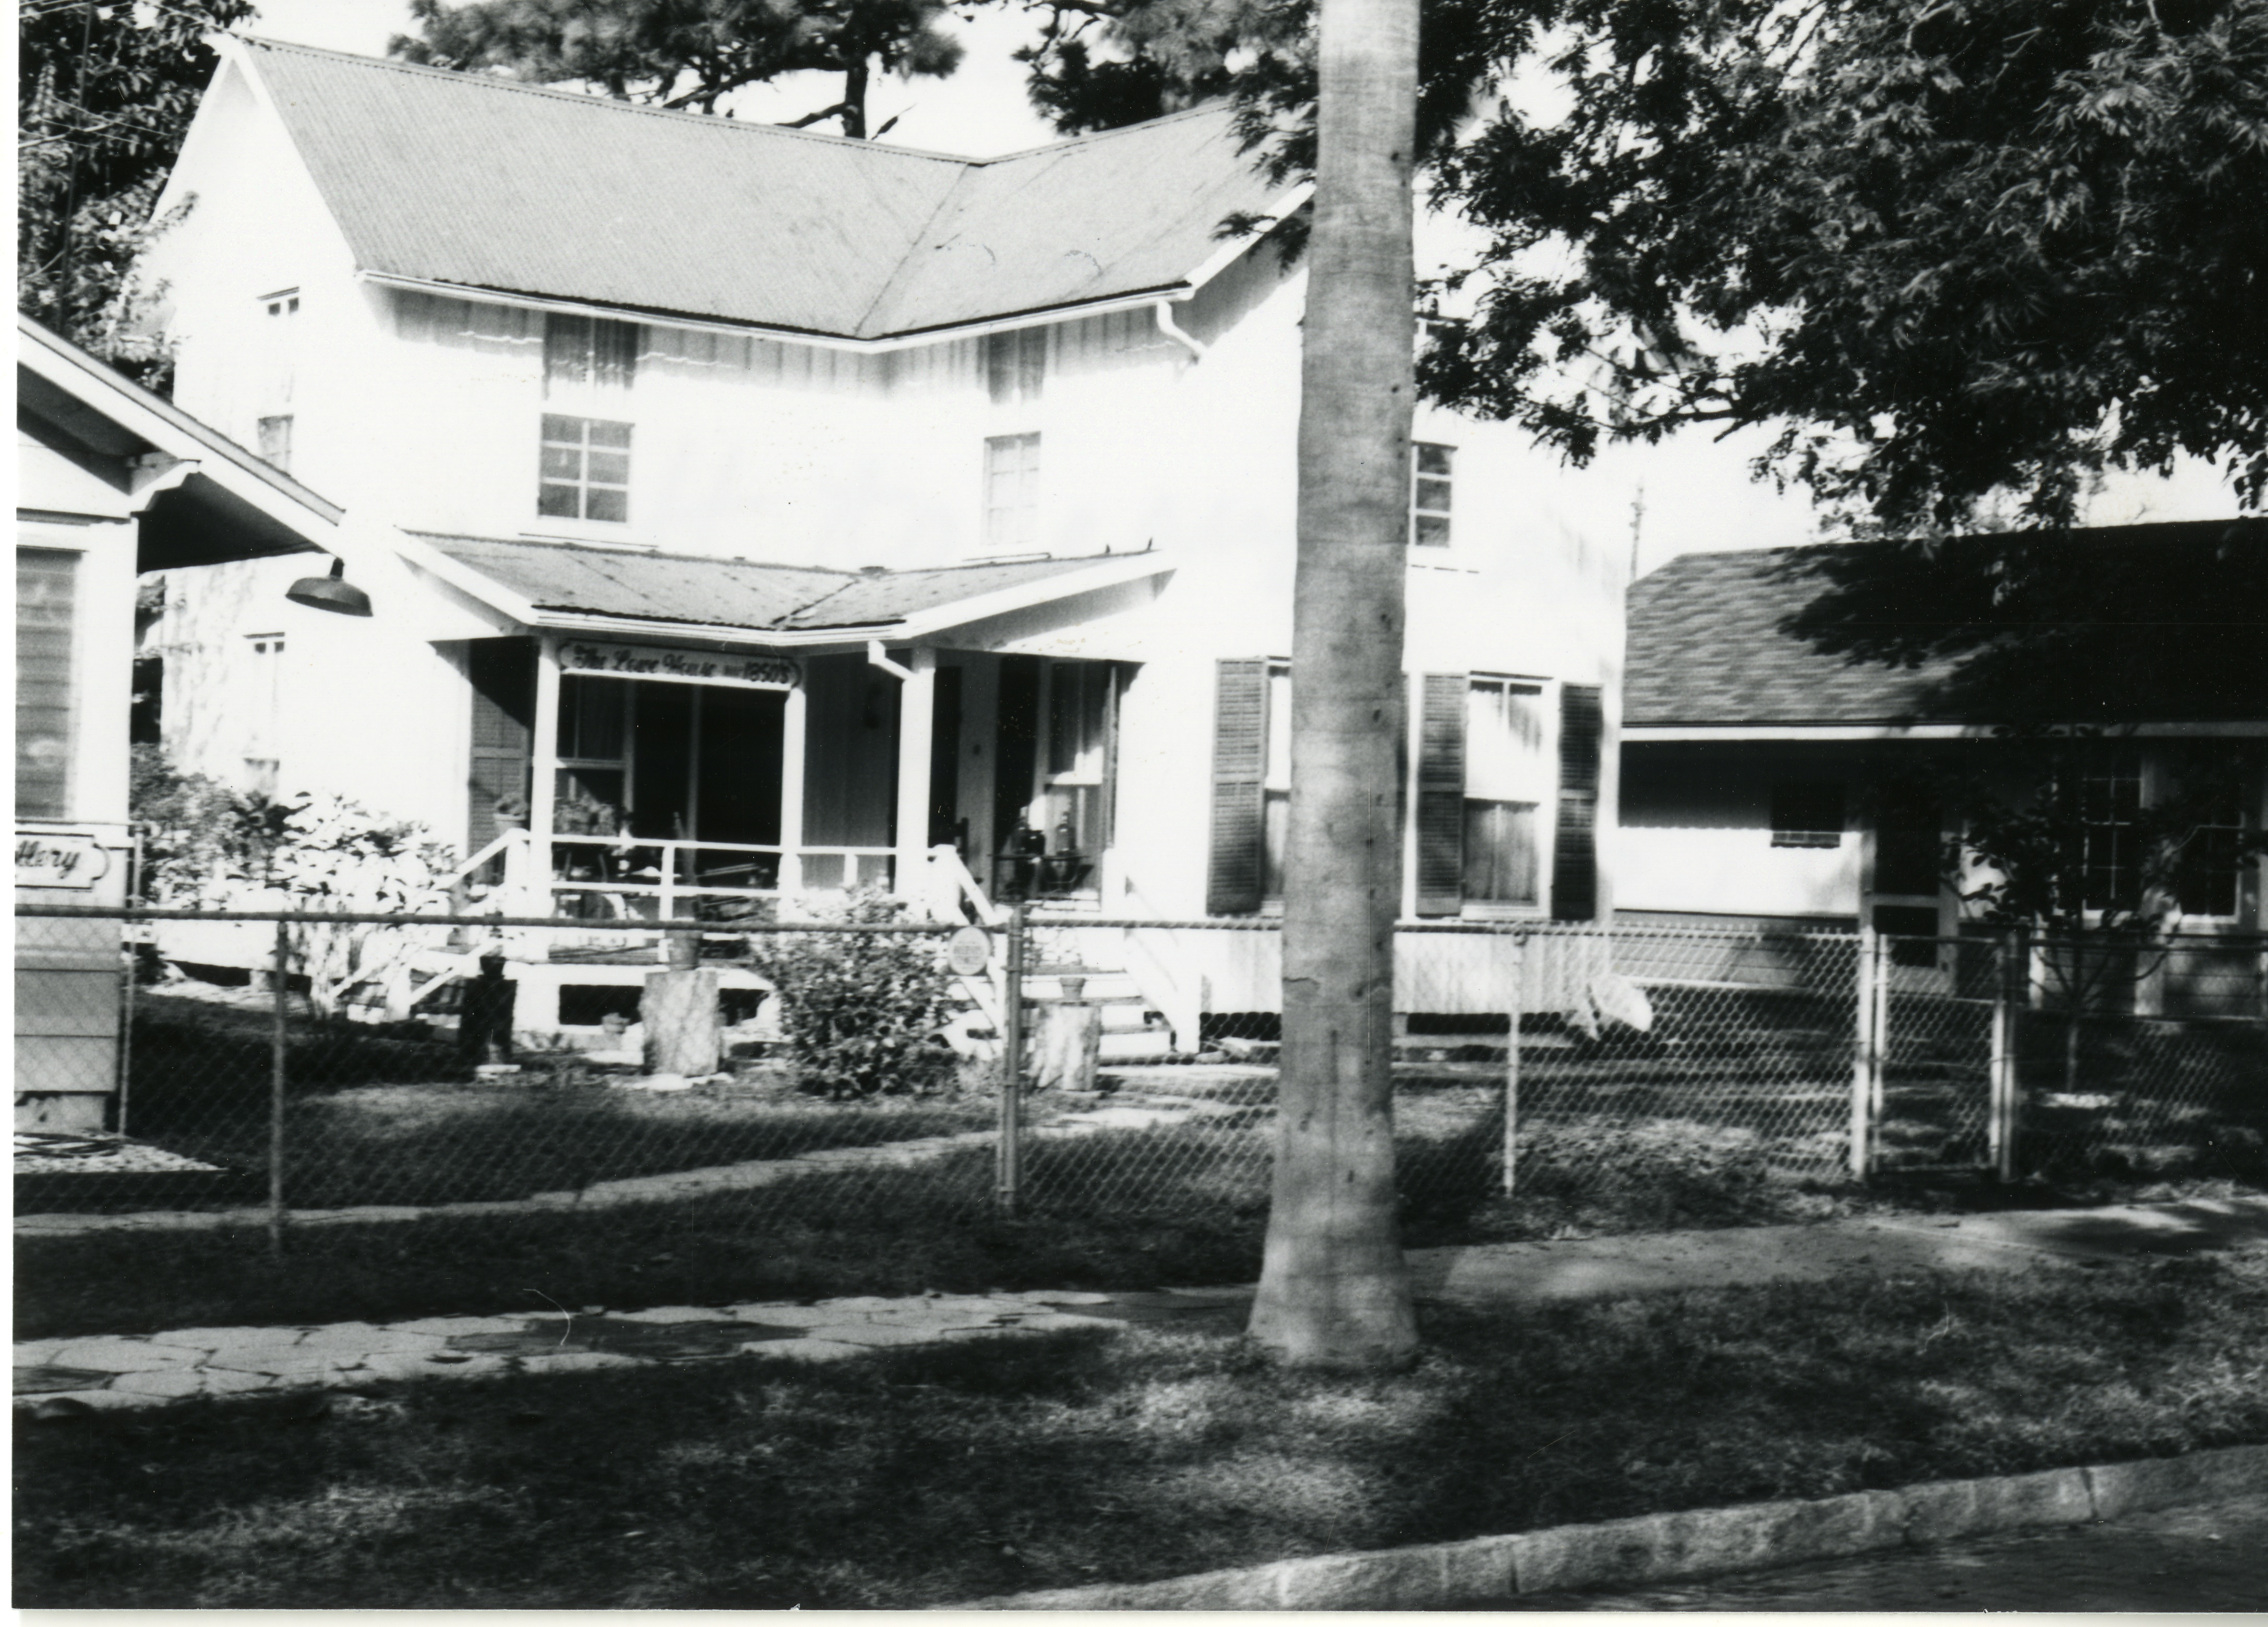 Lowe House at the former Haas Museum, St. Petersburg, Florida, circa 1982.